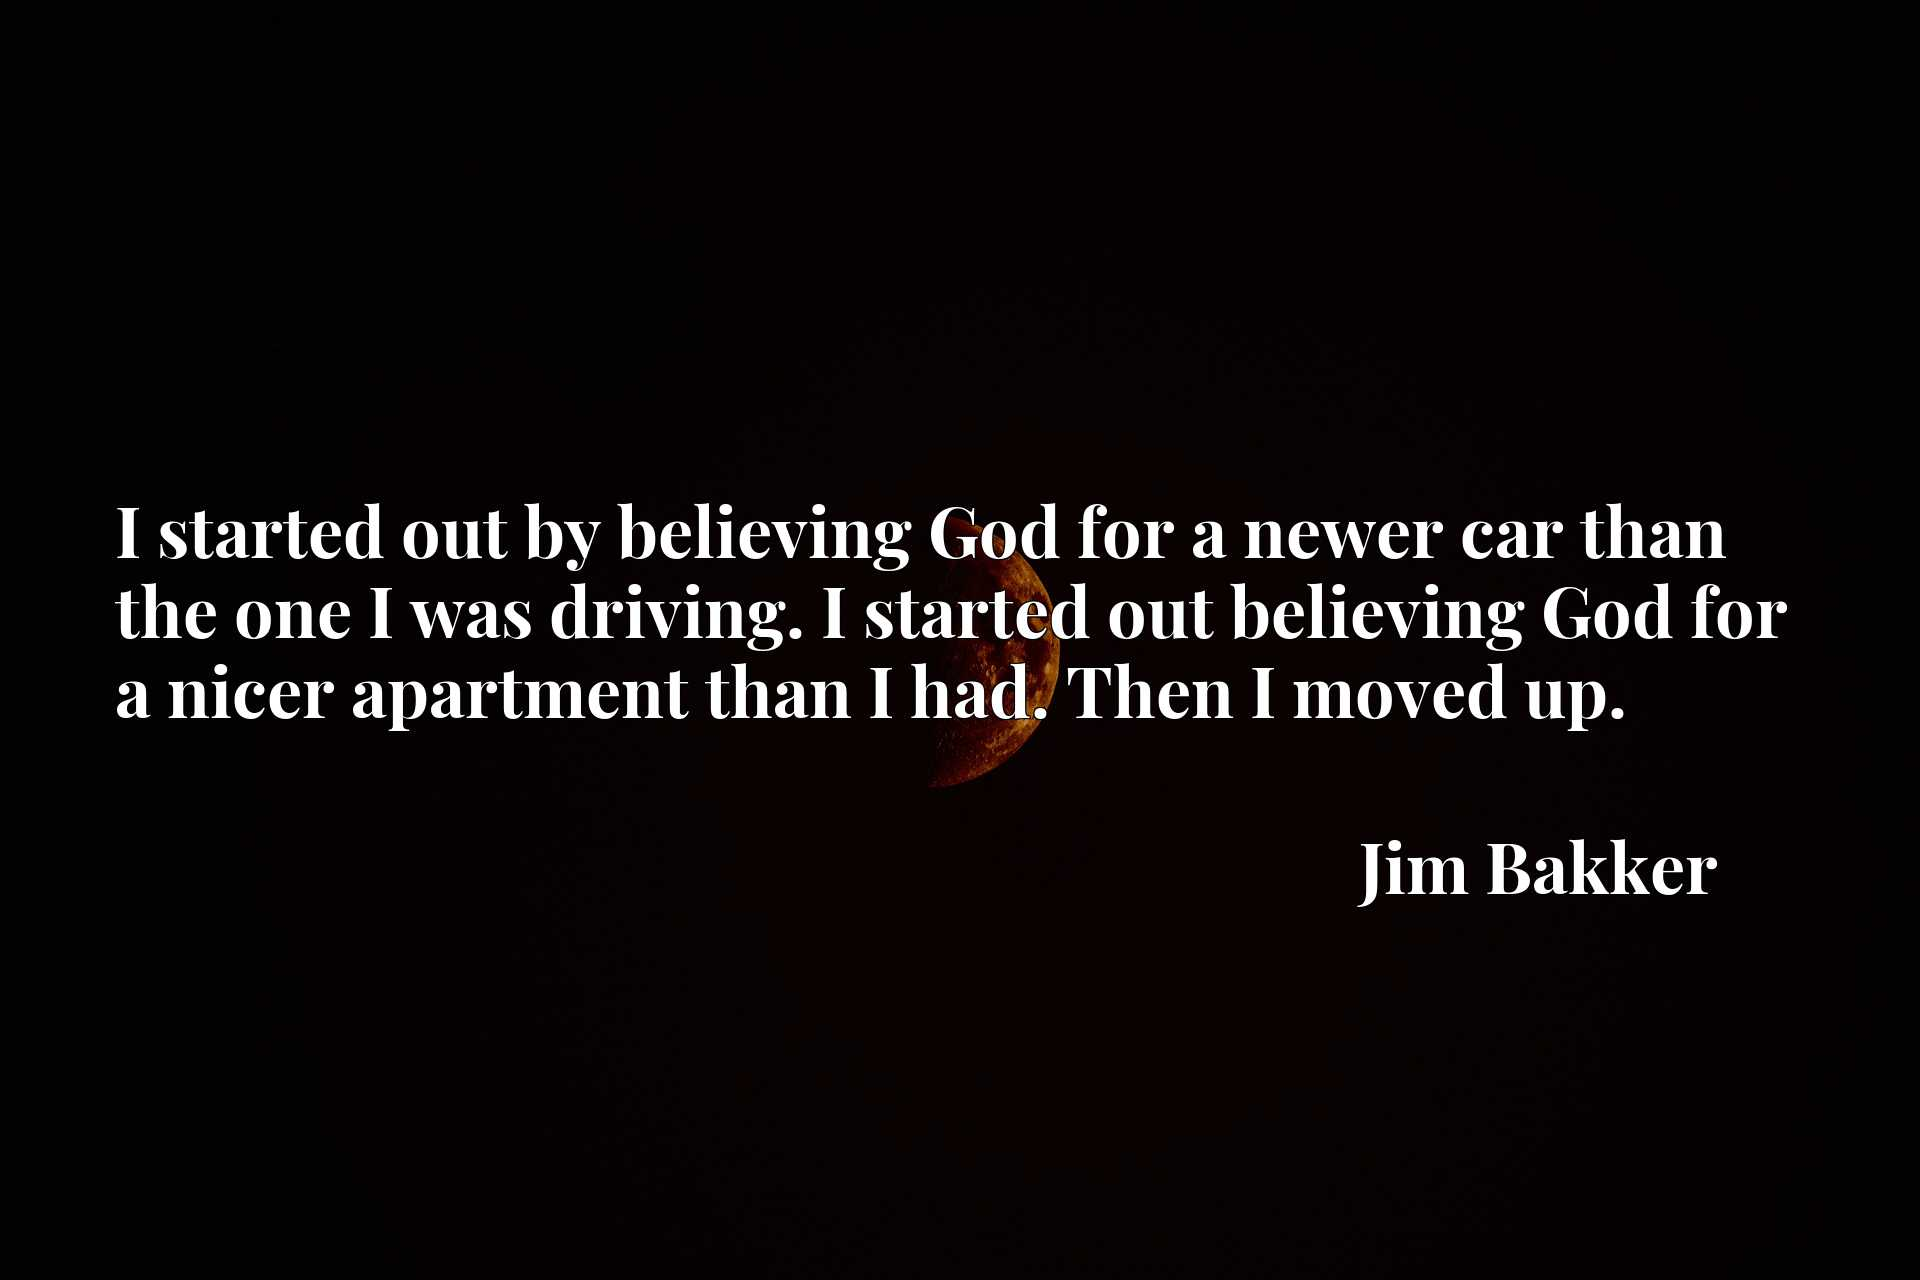 I started out by believing God for a newer car than the one I was driving. I started out believing God for a nicer apartment than I had. Then I moved up.